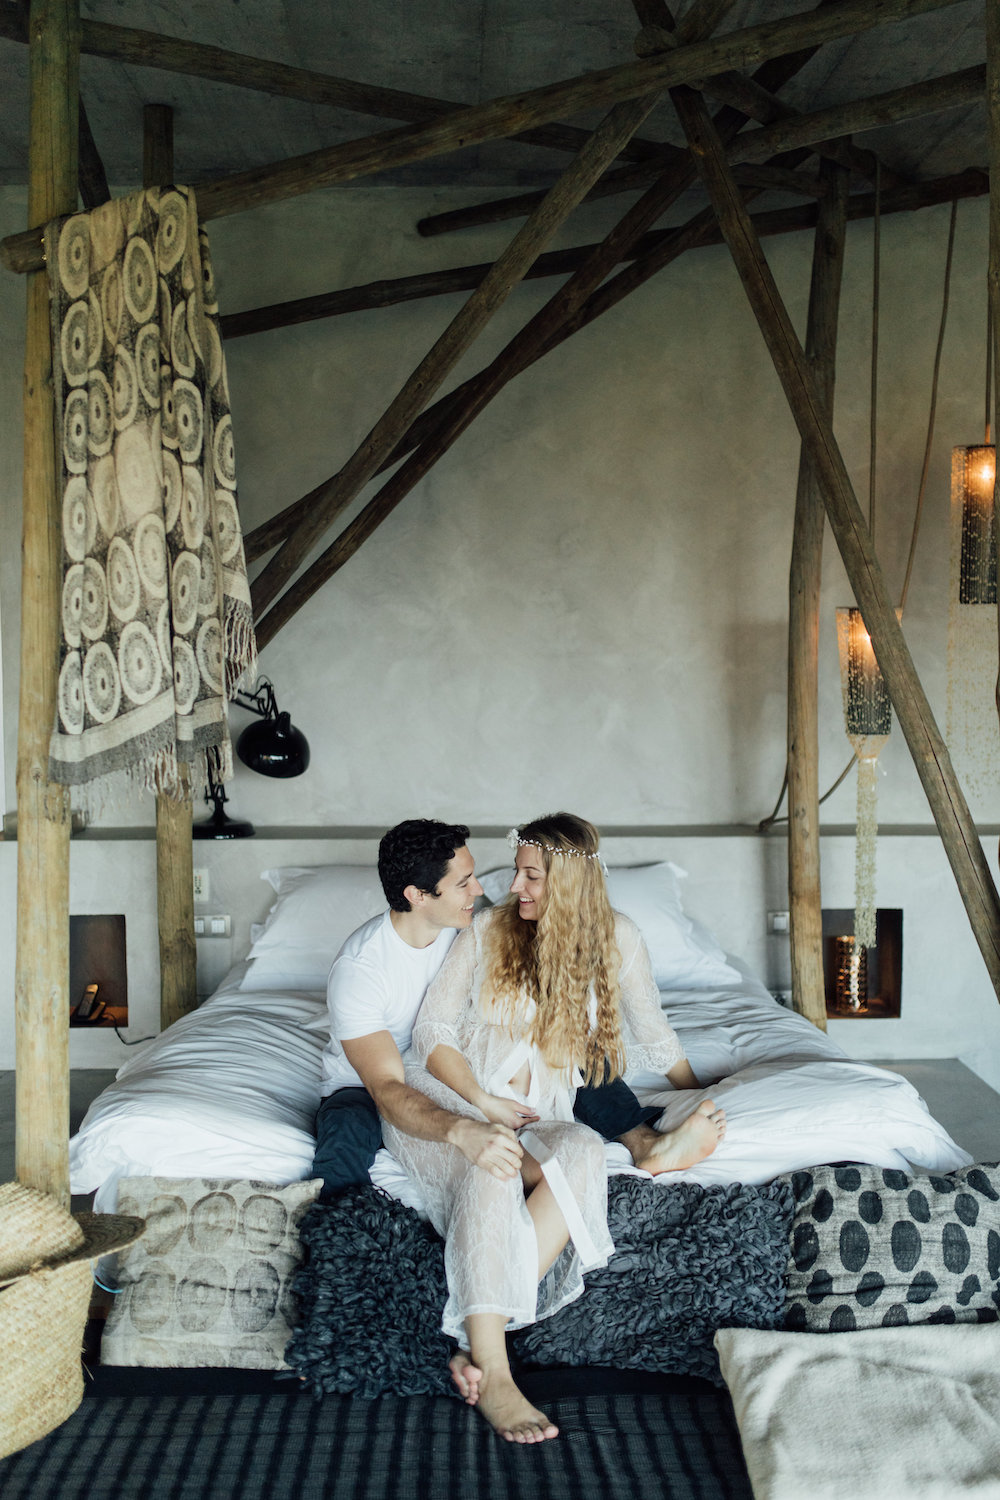 From Portugal with love - Miggle + Diego - Blog famille Sunday Grenadine